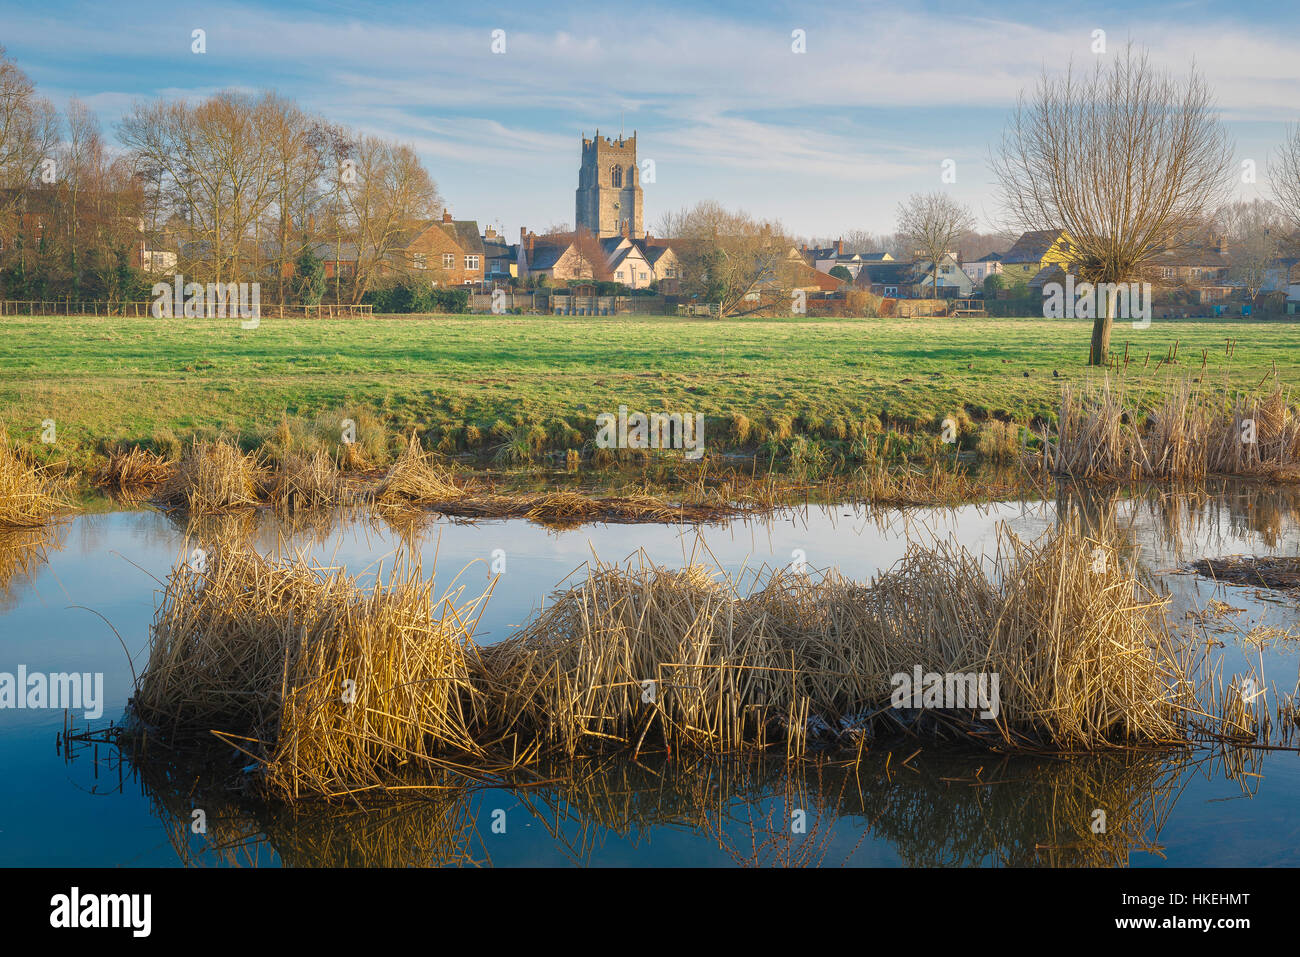 Sudbury Suffolk, view of the town of Sudbury in Suffolk with the River Stour in the foreground, Babergh district, - Stock Image